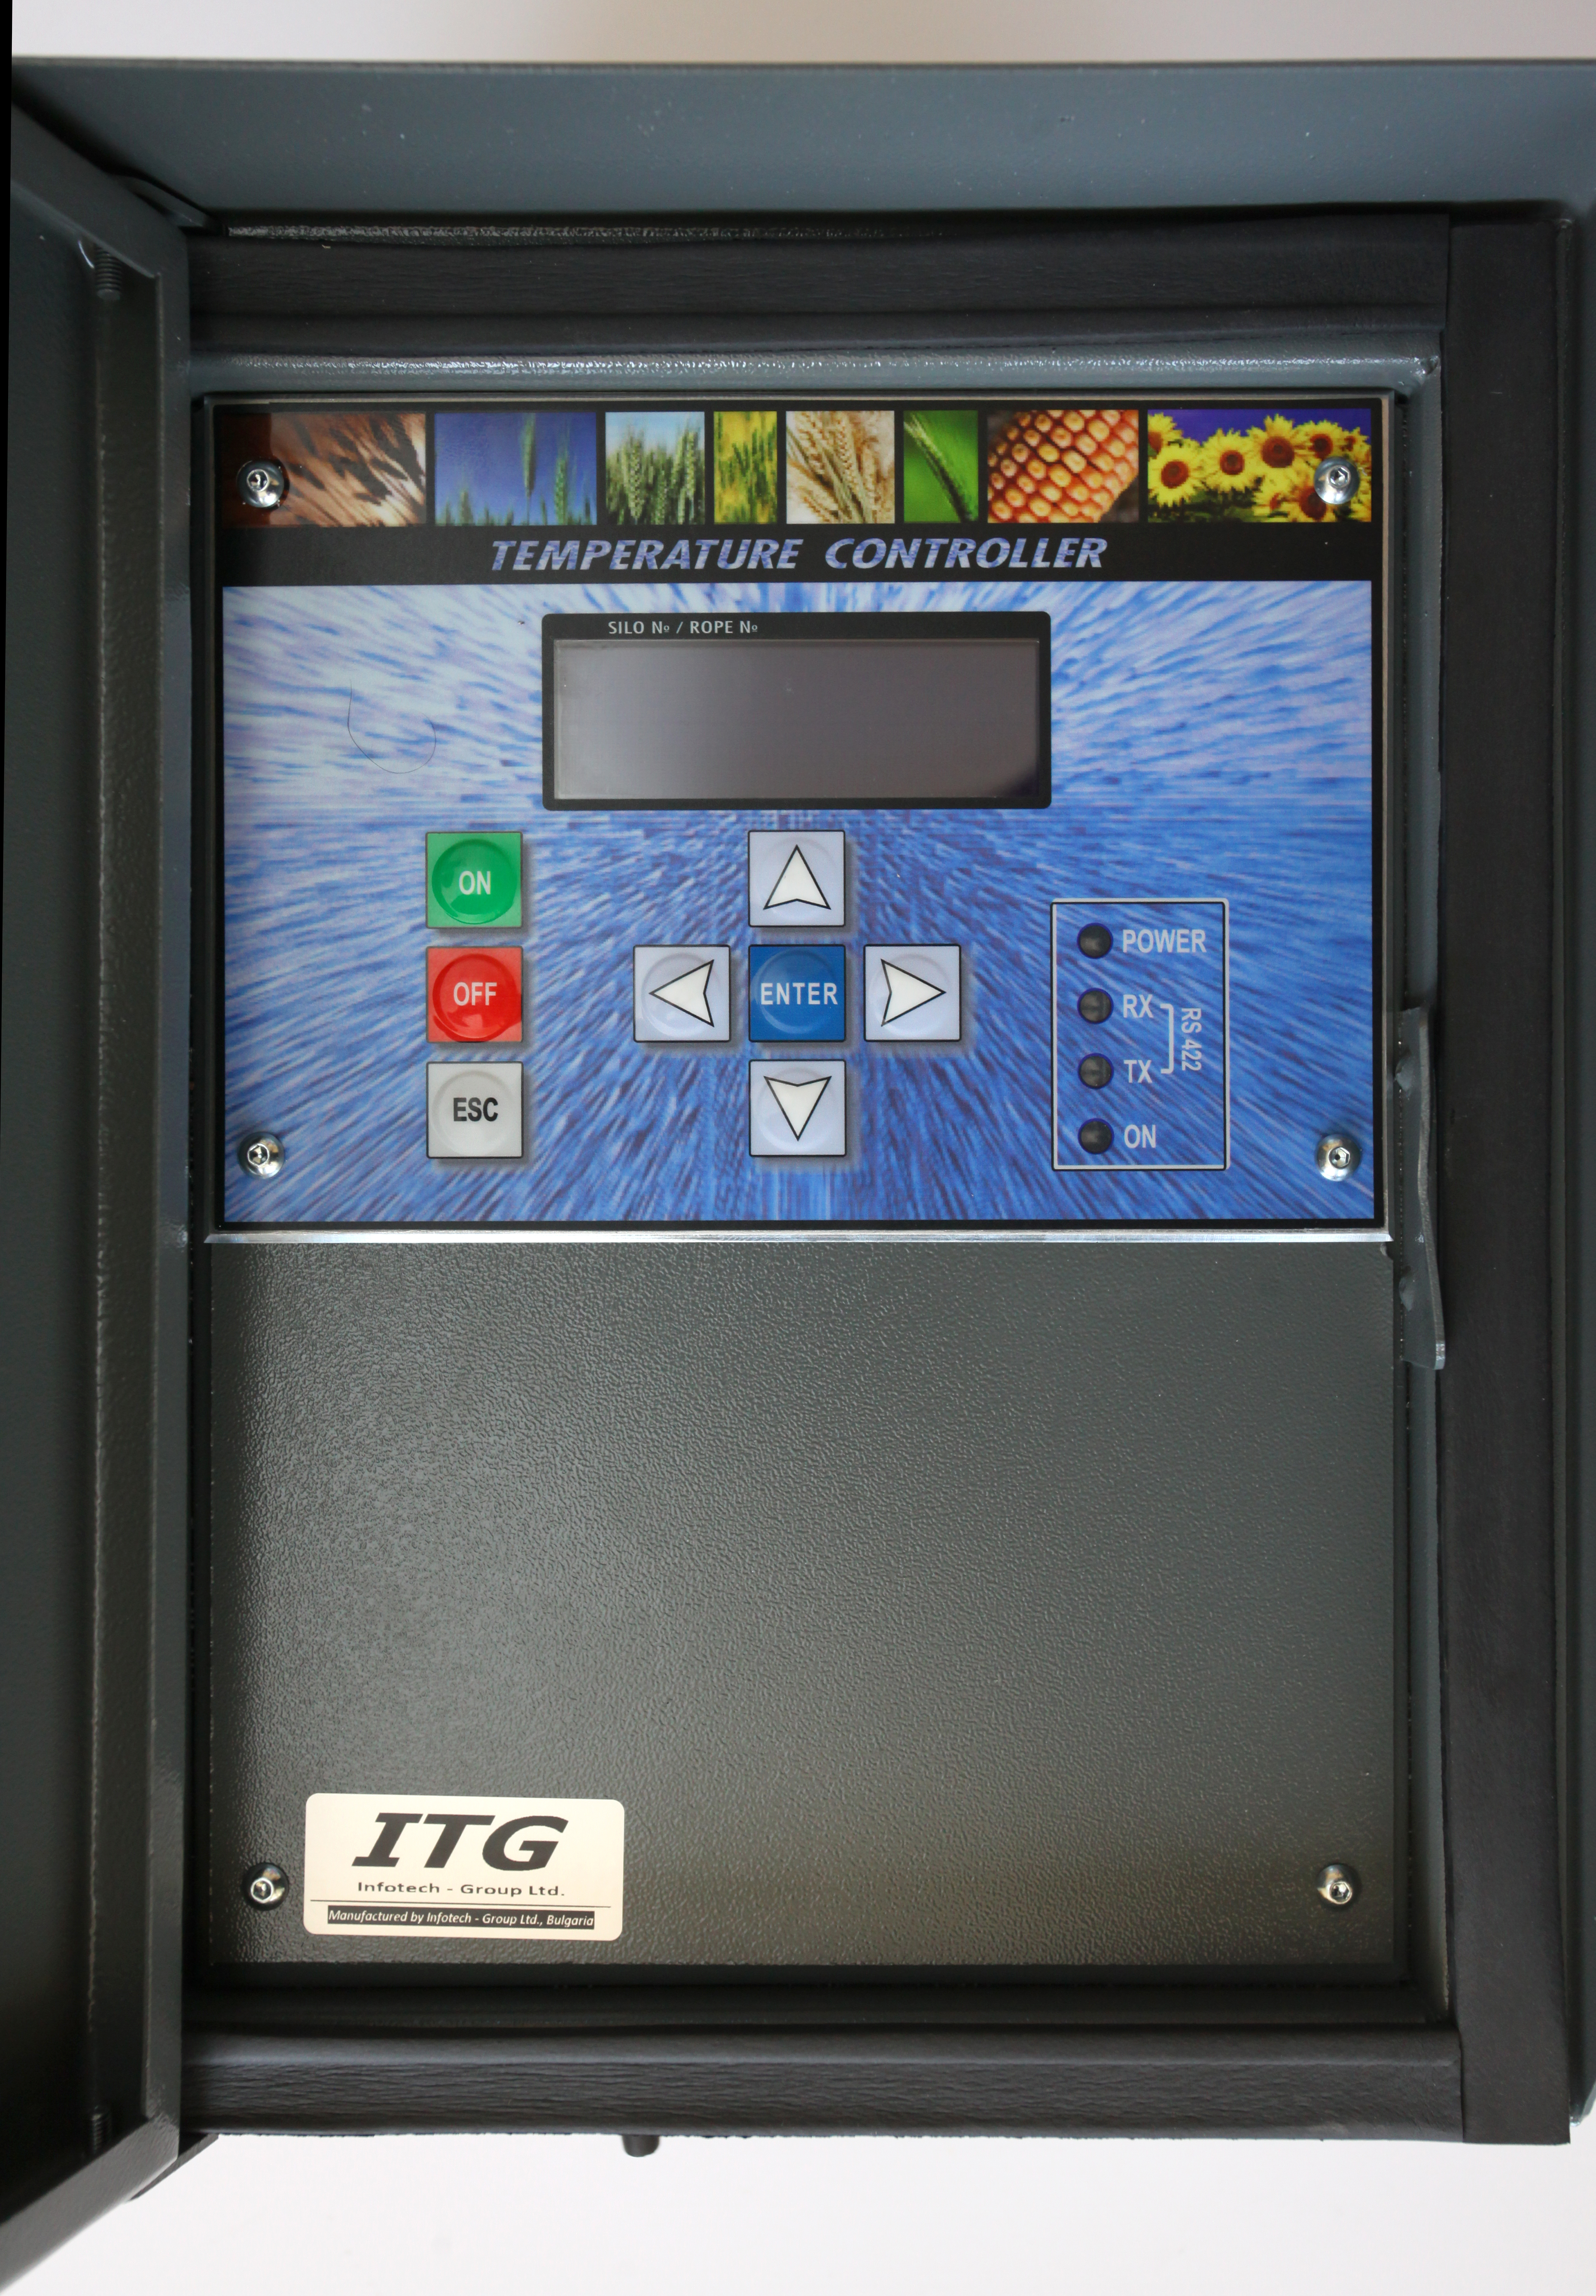 grain bin temperature monitoring system by ITG